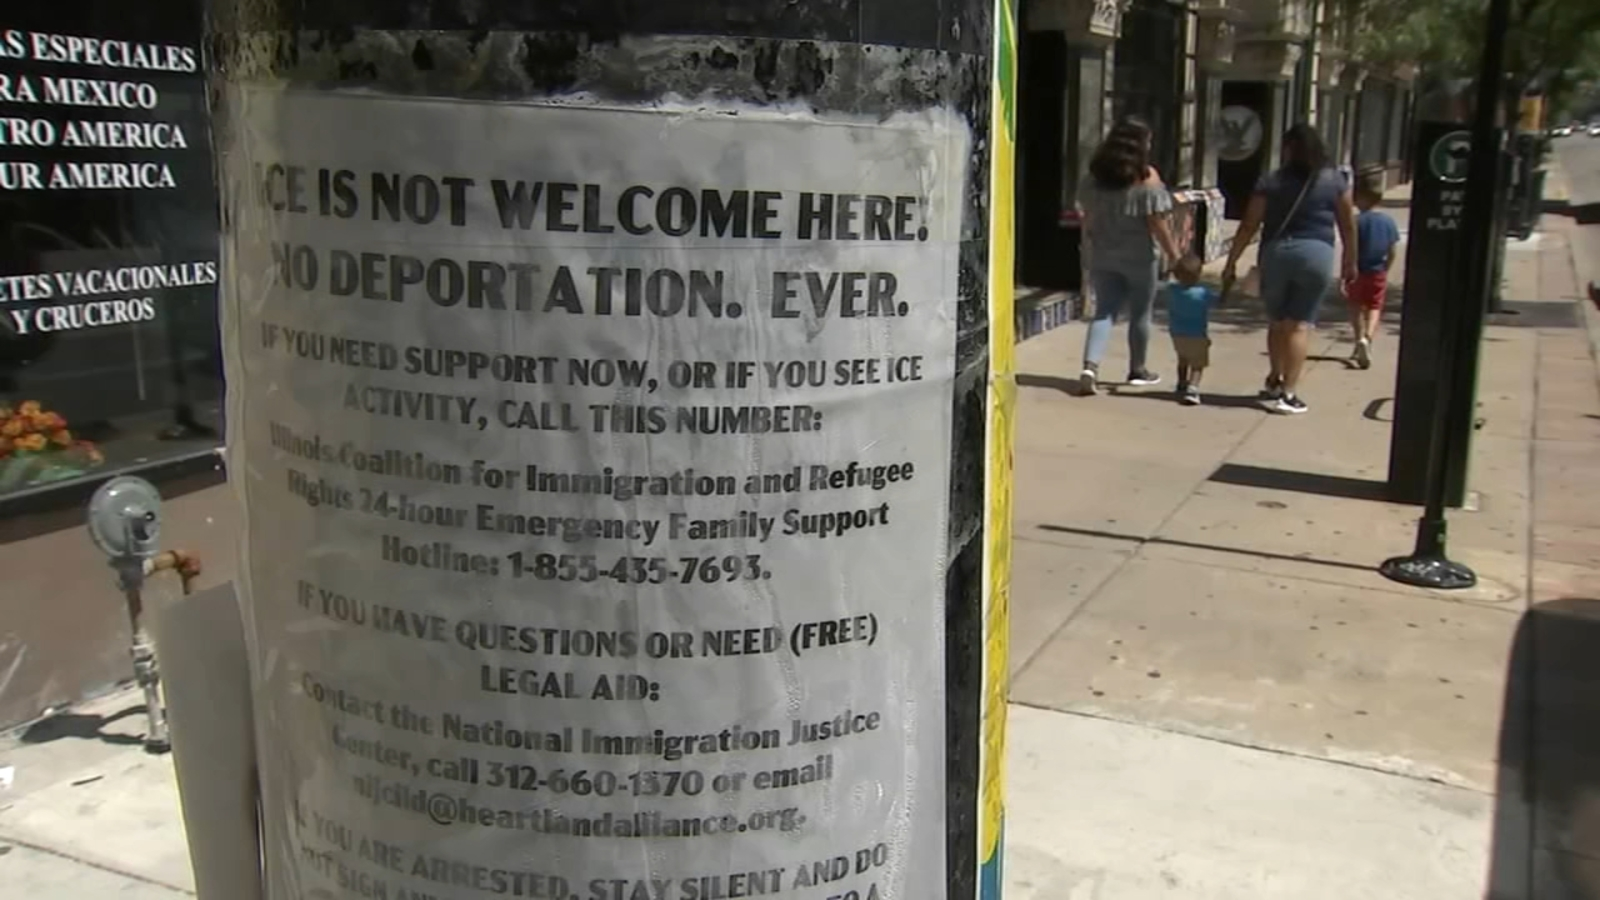 Unfounded reports of ICE agents in Pilsen stoke fear after massive raids in Mississippi